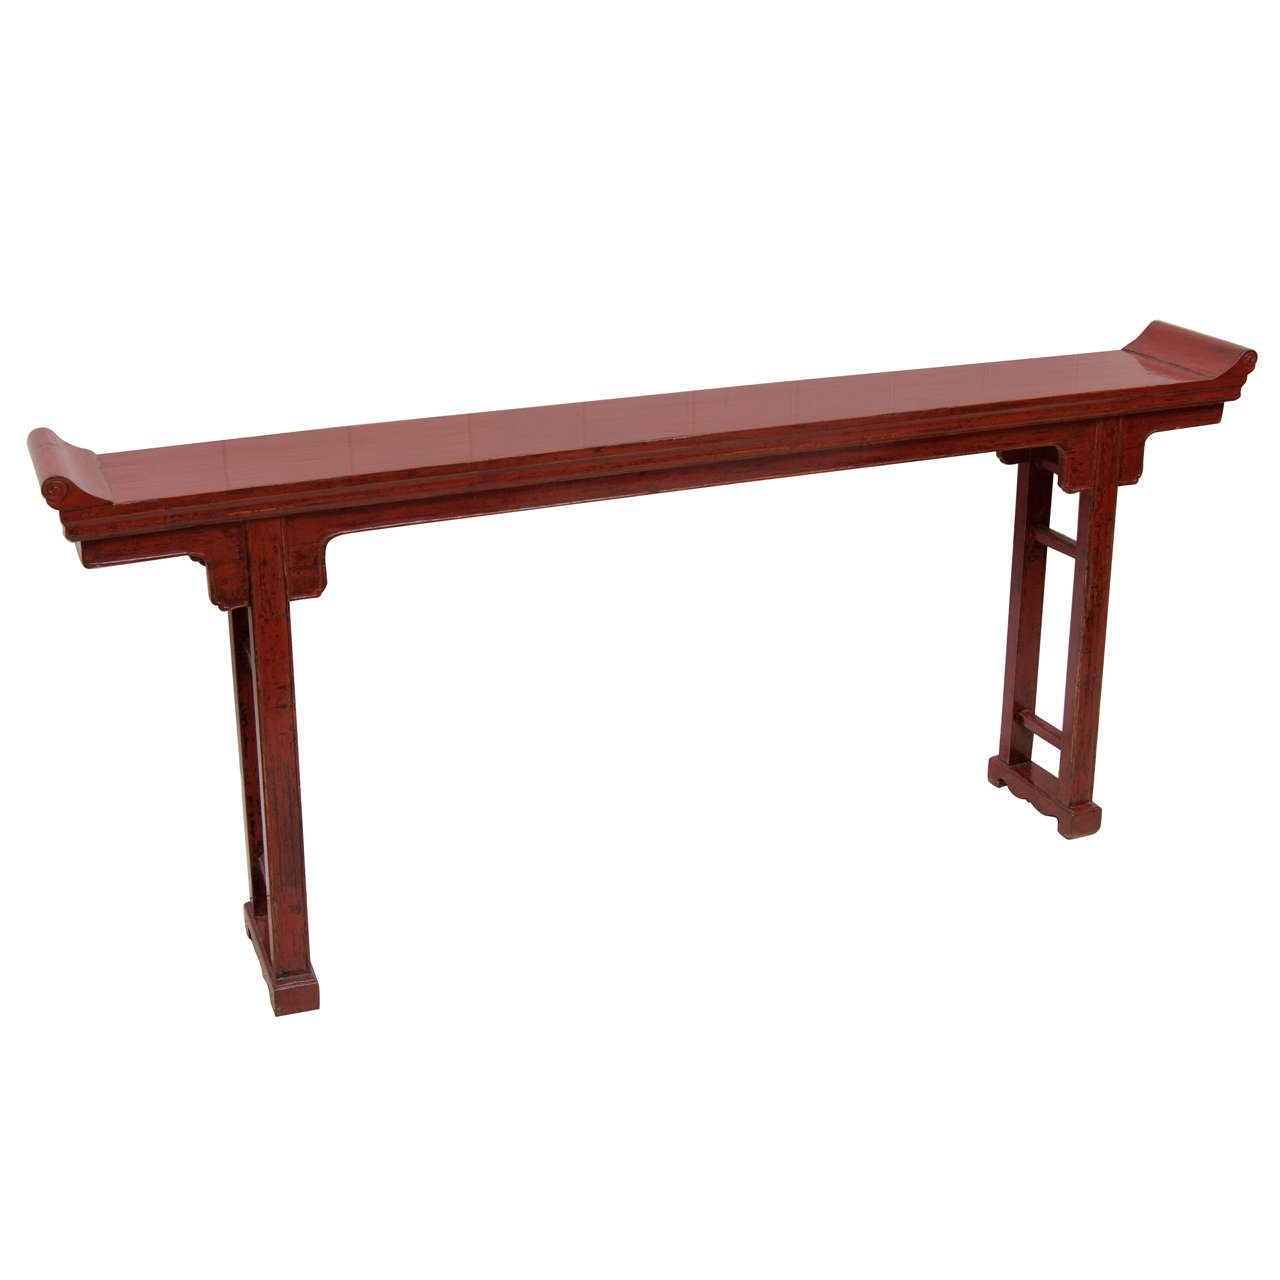 for Table th onclick